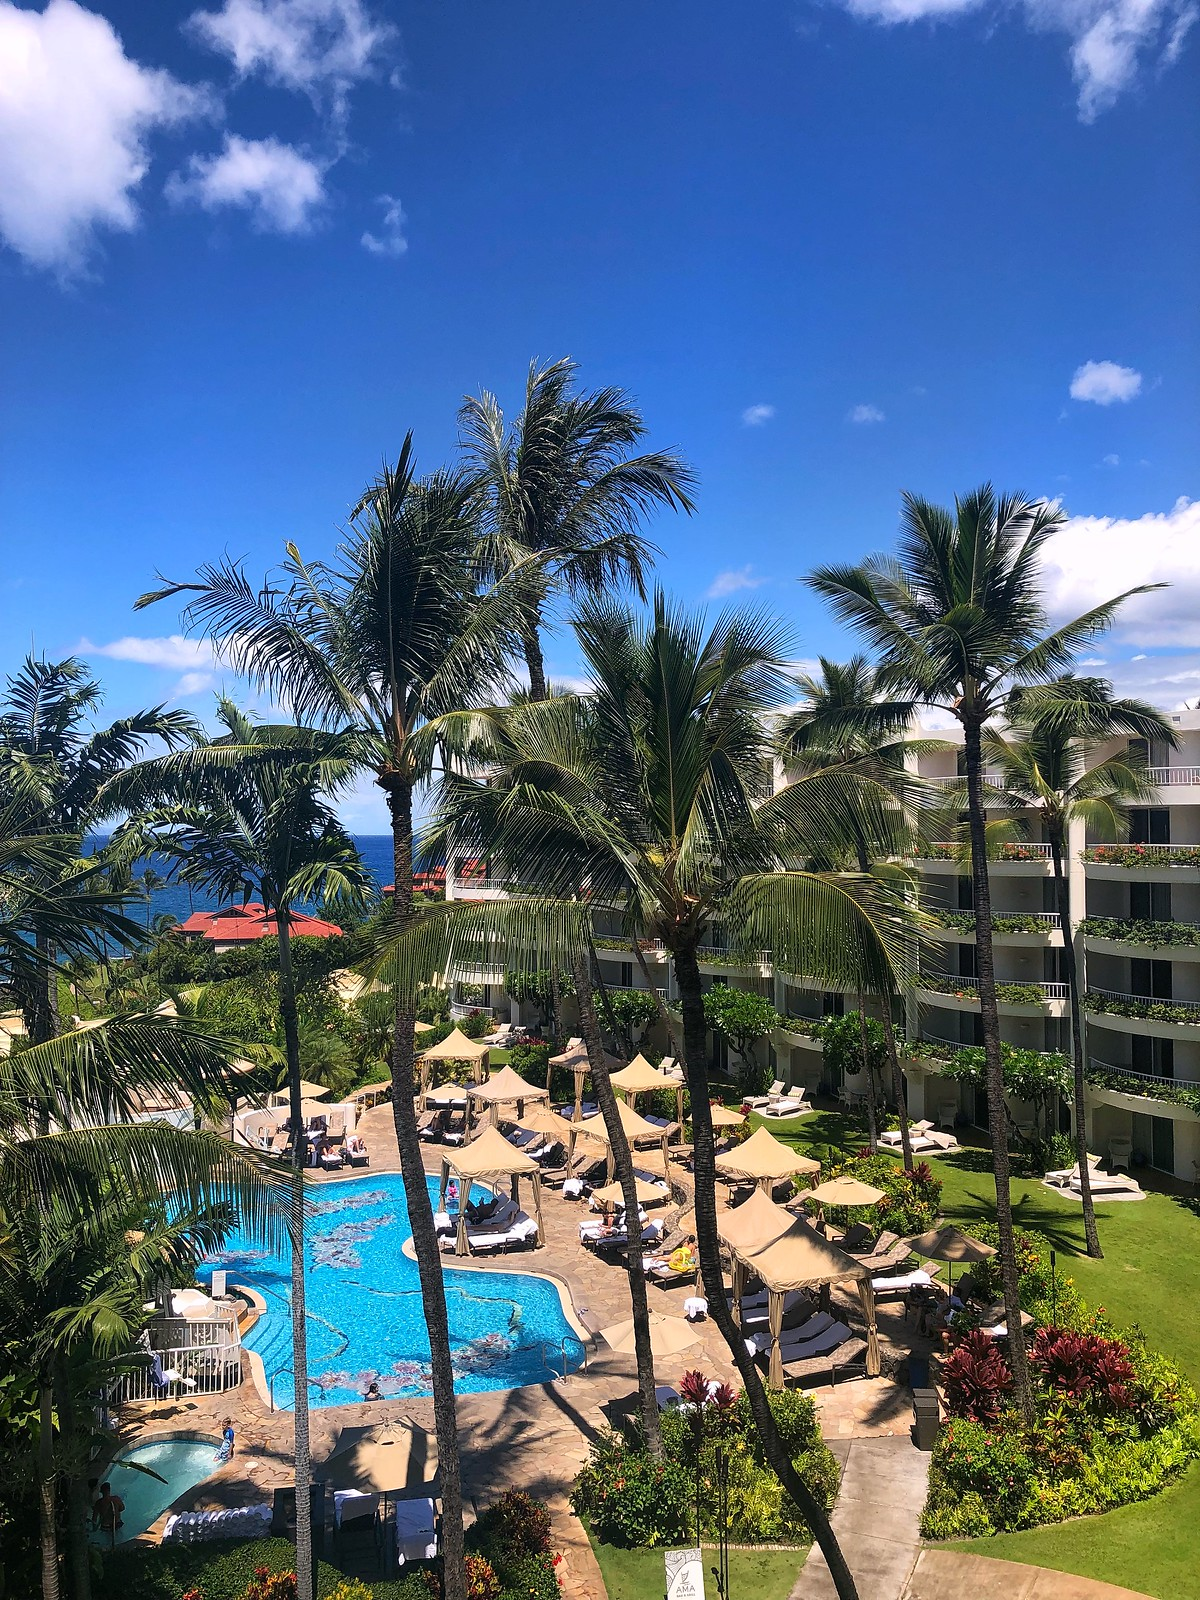 Balcony View Hotel Pool Fairmont Kea Lani BEST Hotel in Maui Where to Stay on Maui Hawaii